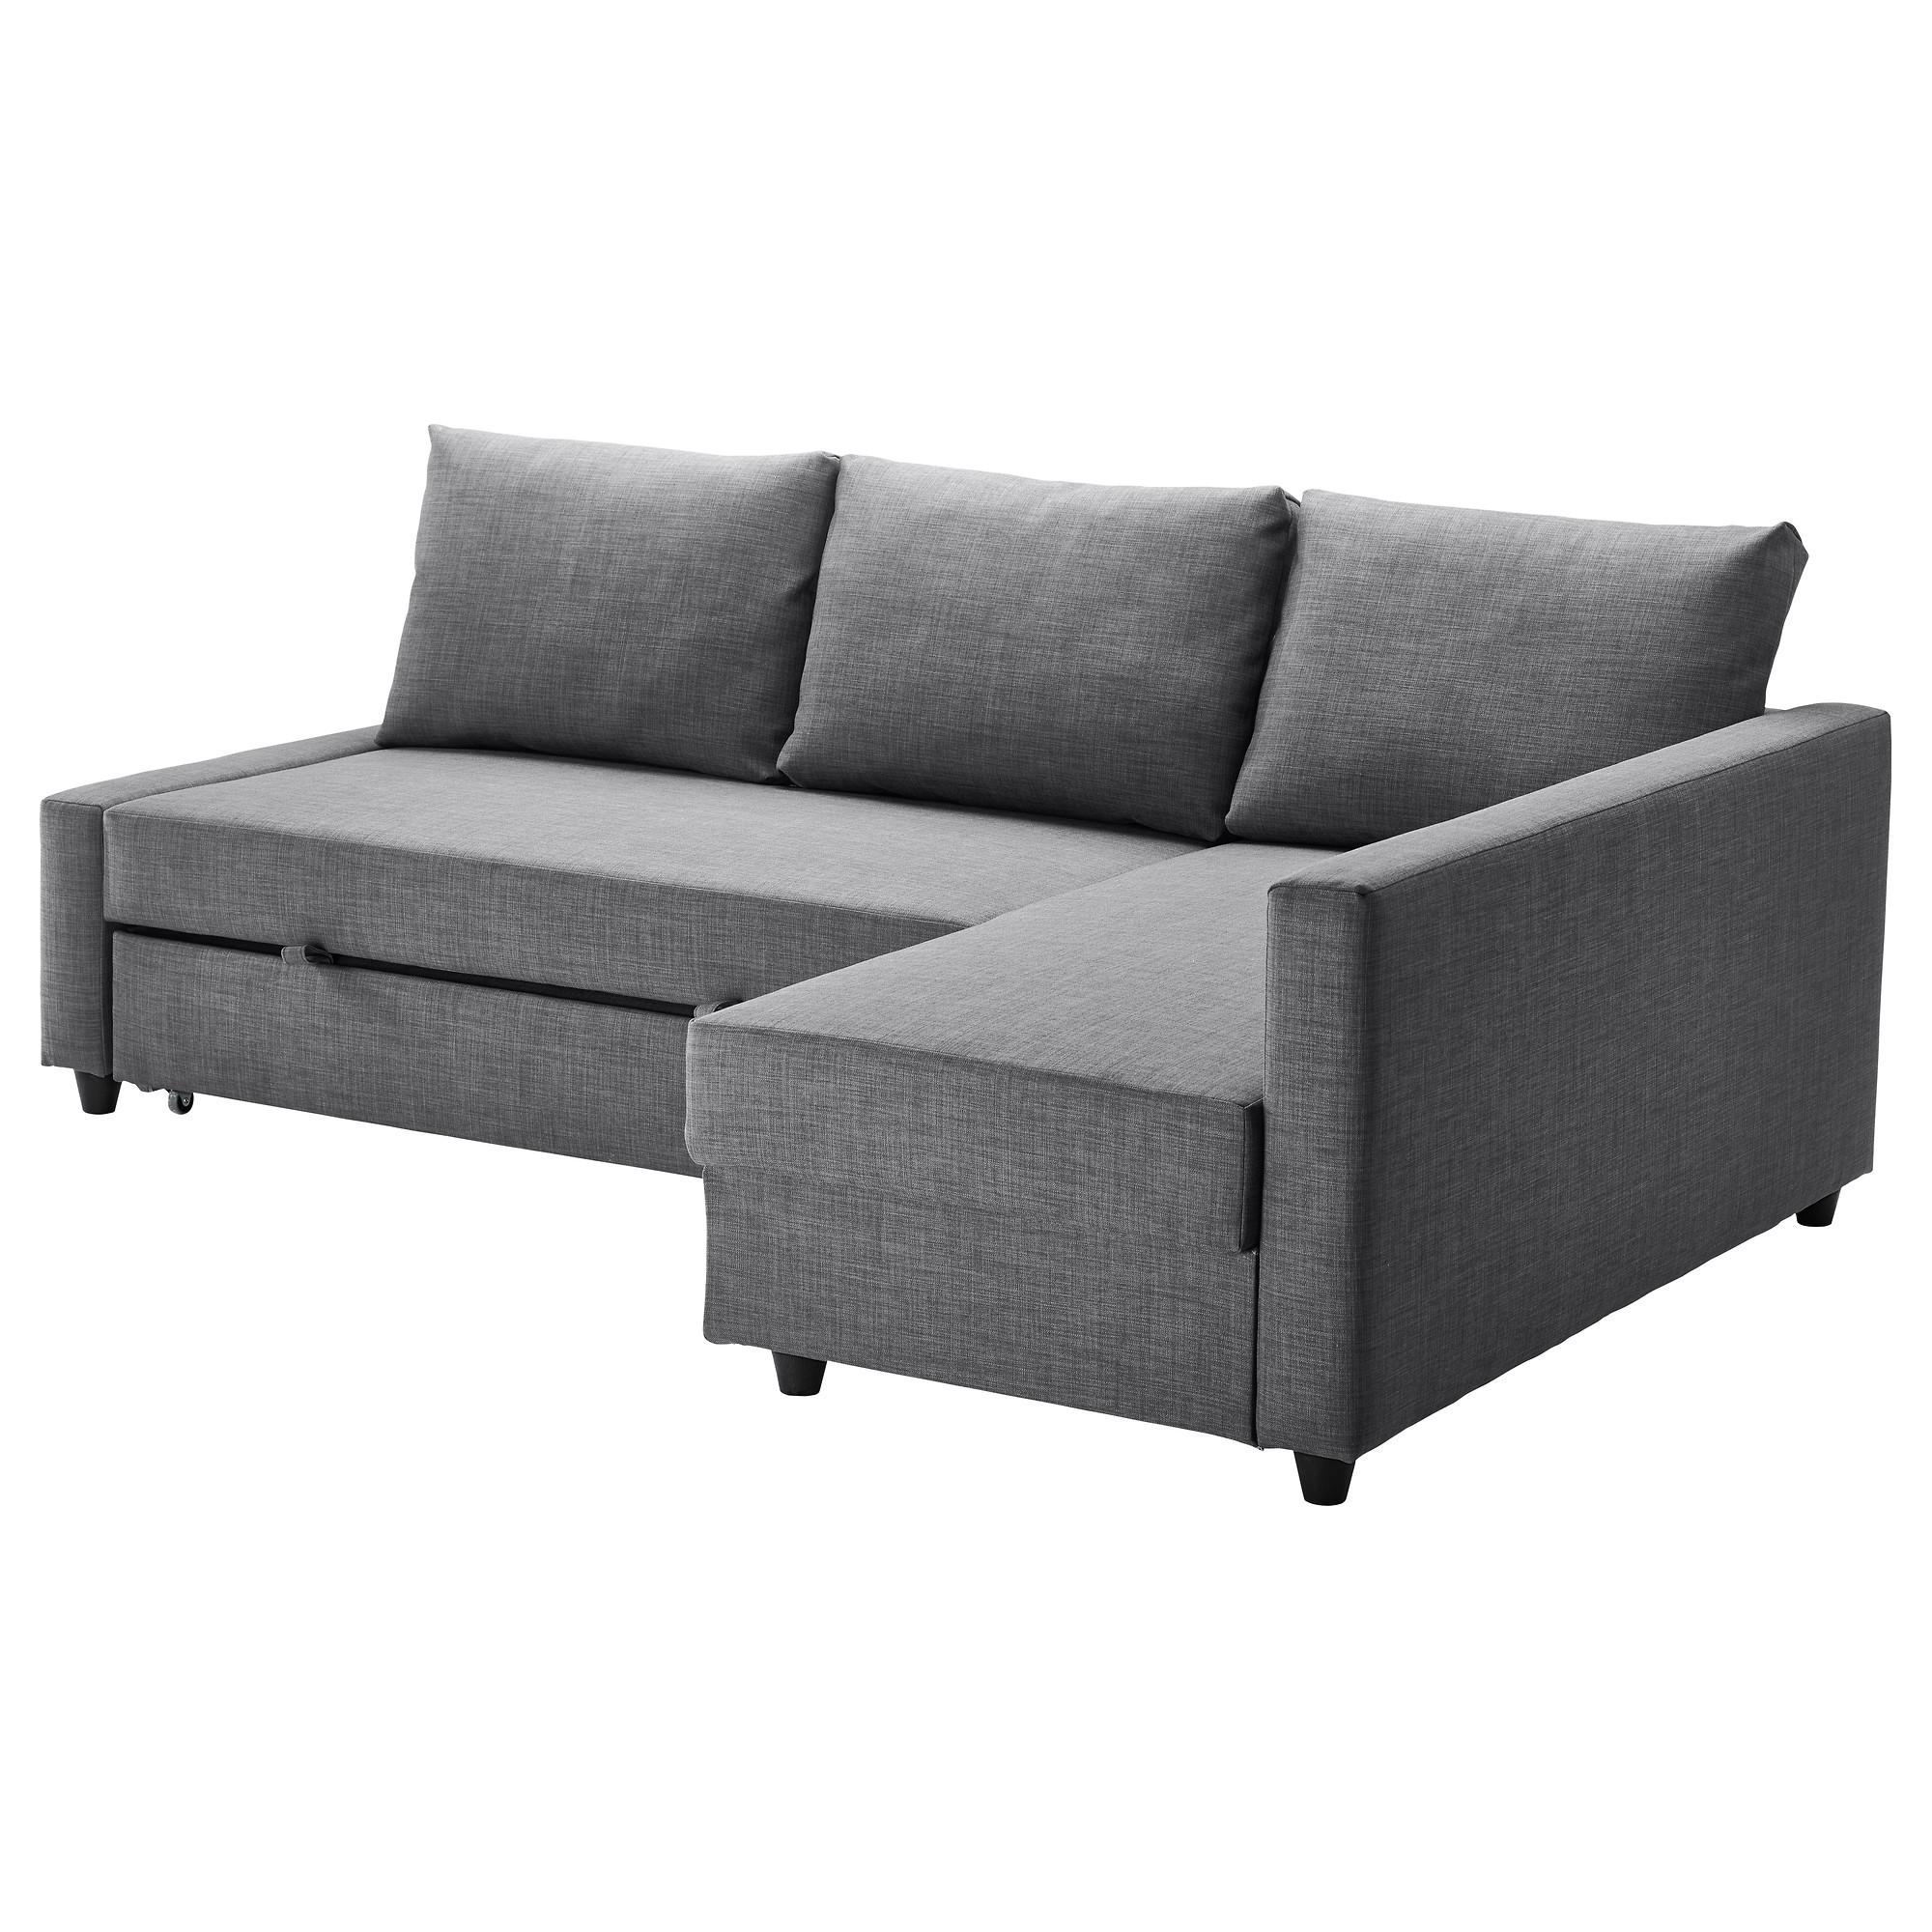 sports shoes dde36 df32d Sleeper sectional,3 seat w/storage FRIHETEN Skiftebo dark gray